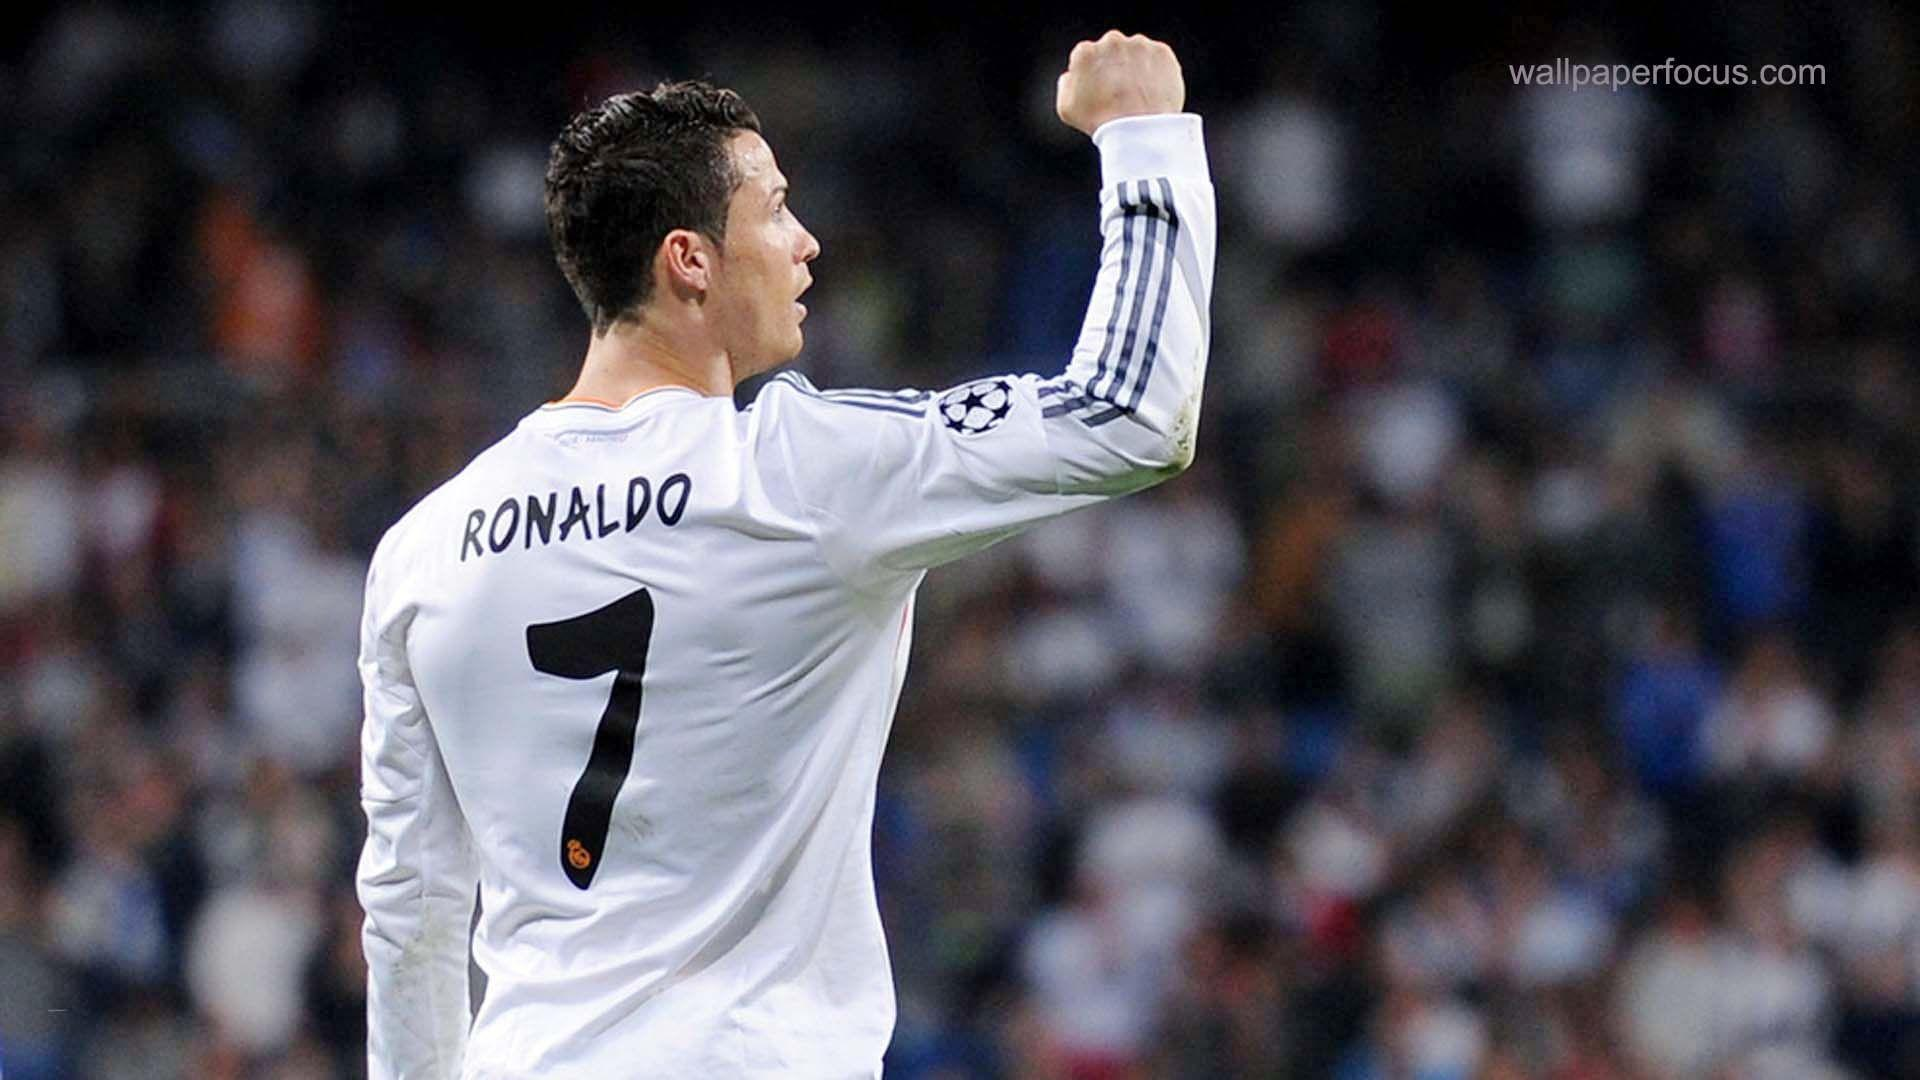 Amazing HD Quality Cristiano Ronaldo Pictures & Backgrounds Collection